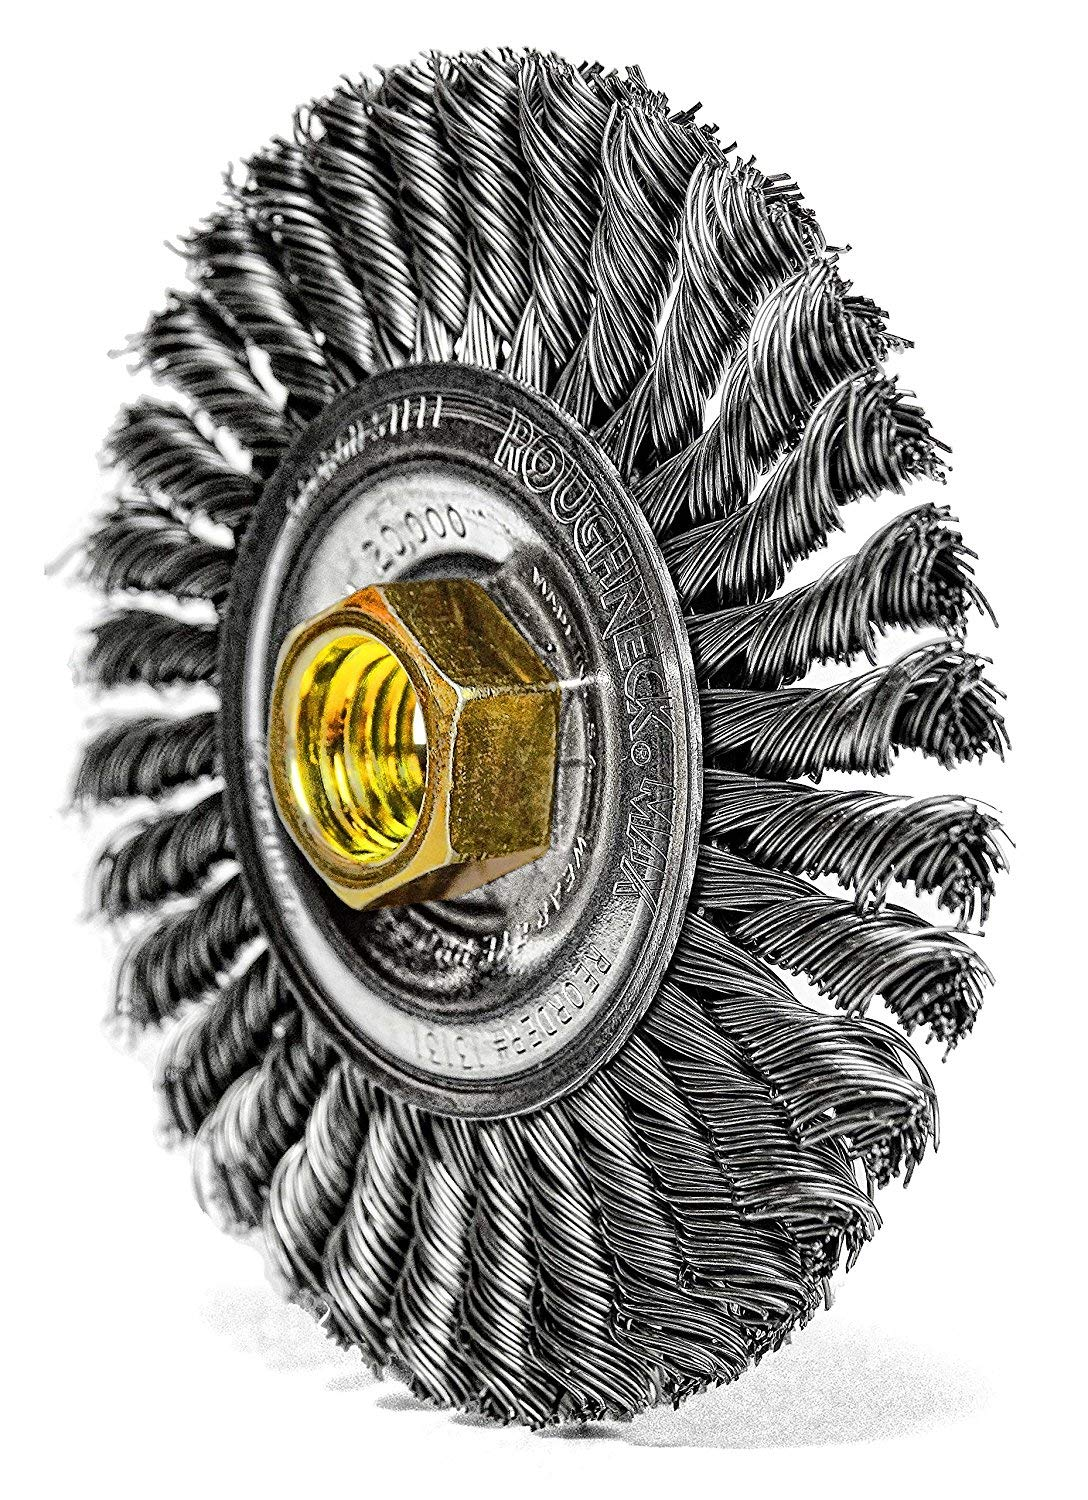 Weiler 13131 ROUGHNECK MAX 4'' Stringer Bead Wire Wheel, .020'' Steel Fill, 5/8''-11 UNC Nut, Made in USA, Pack of 5 by Weiler (Image #8)